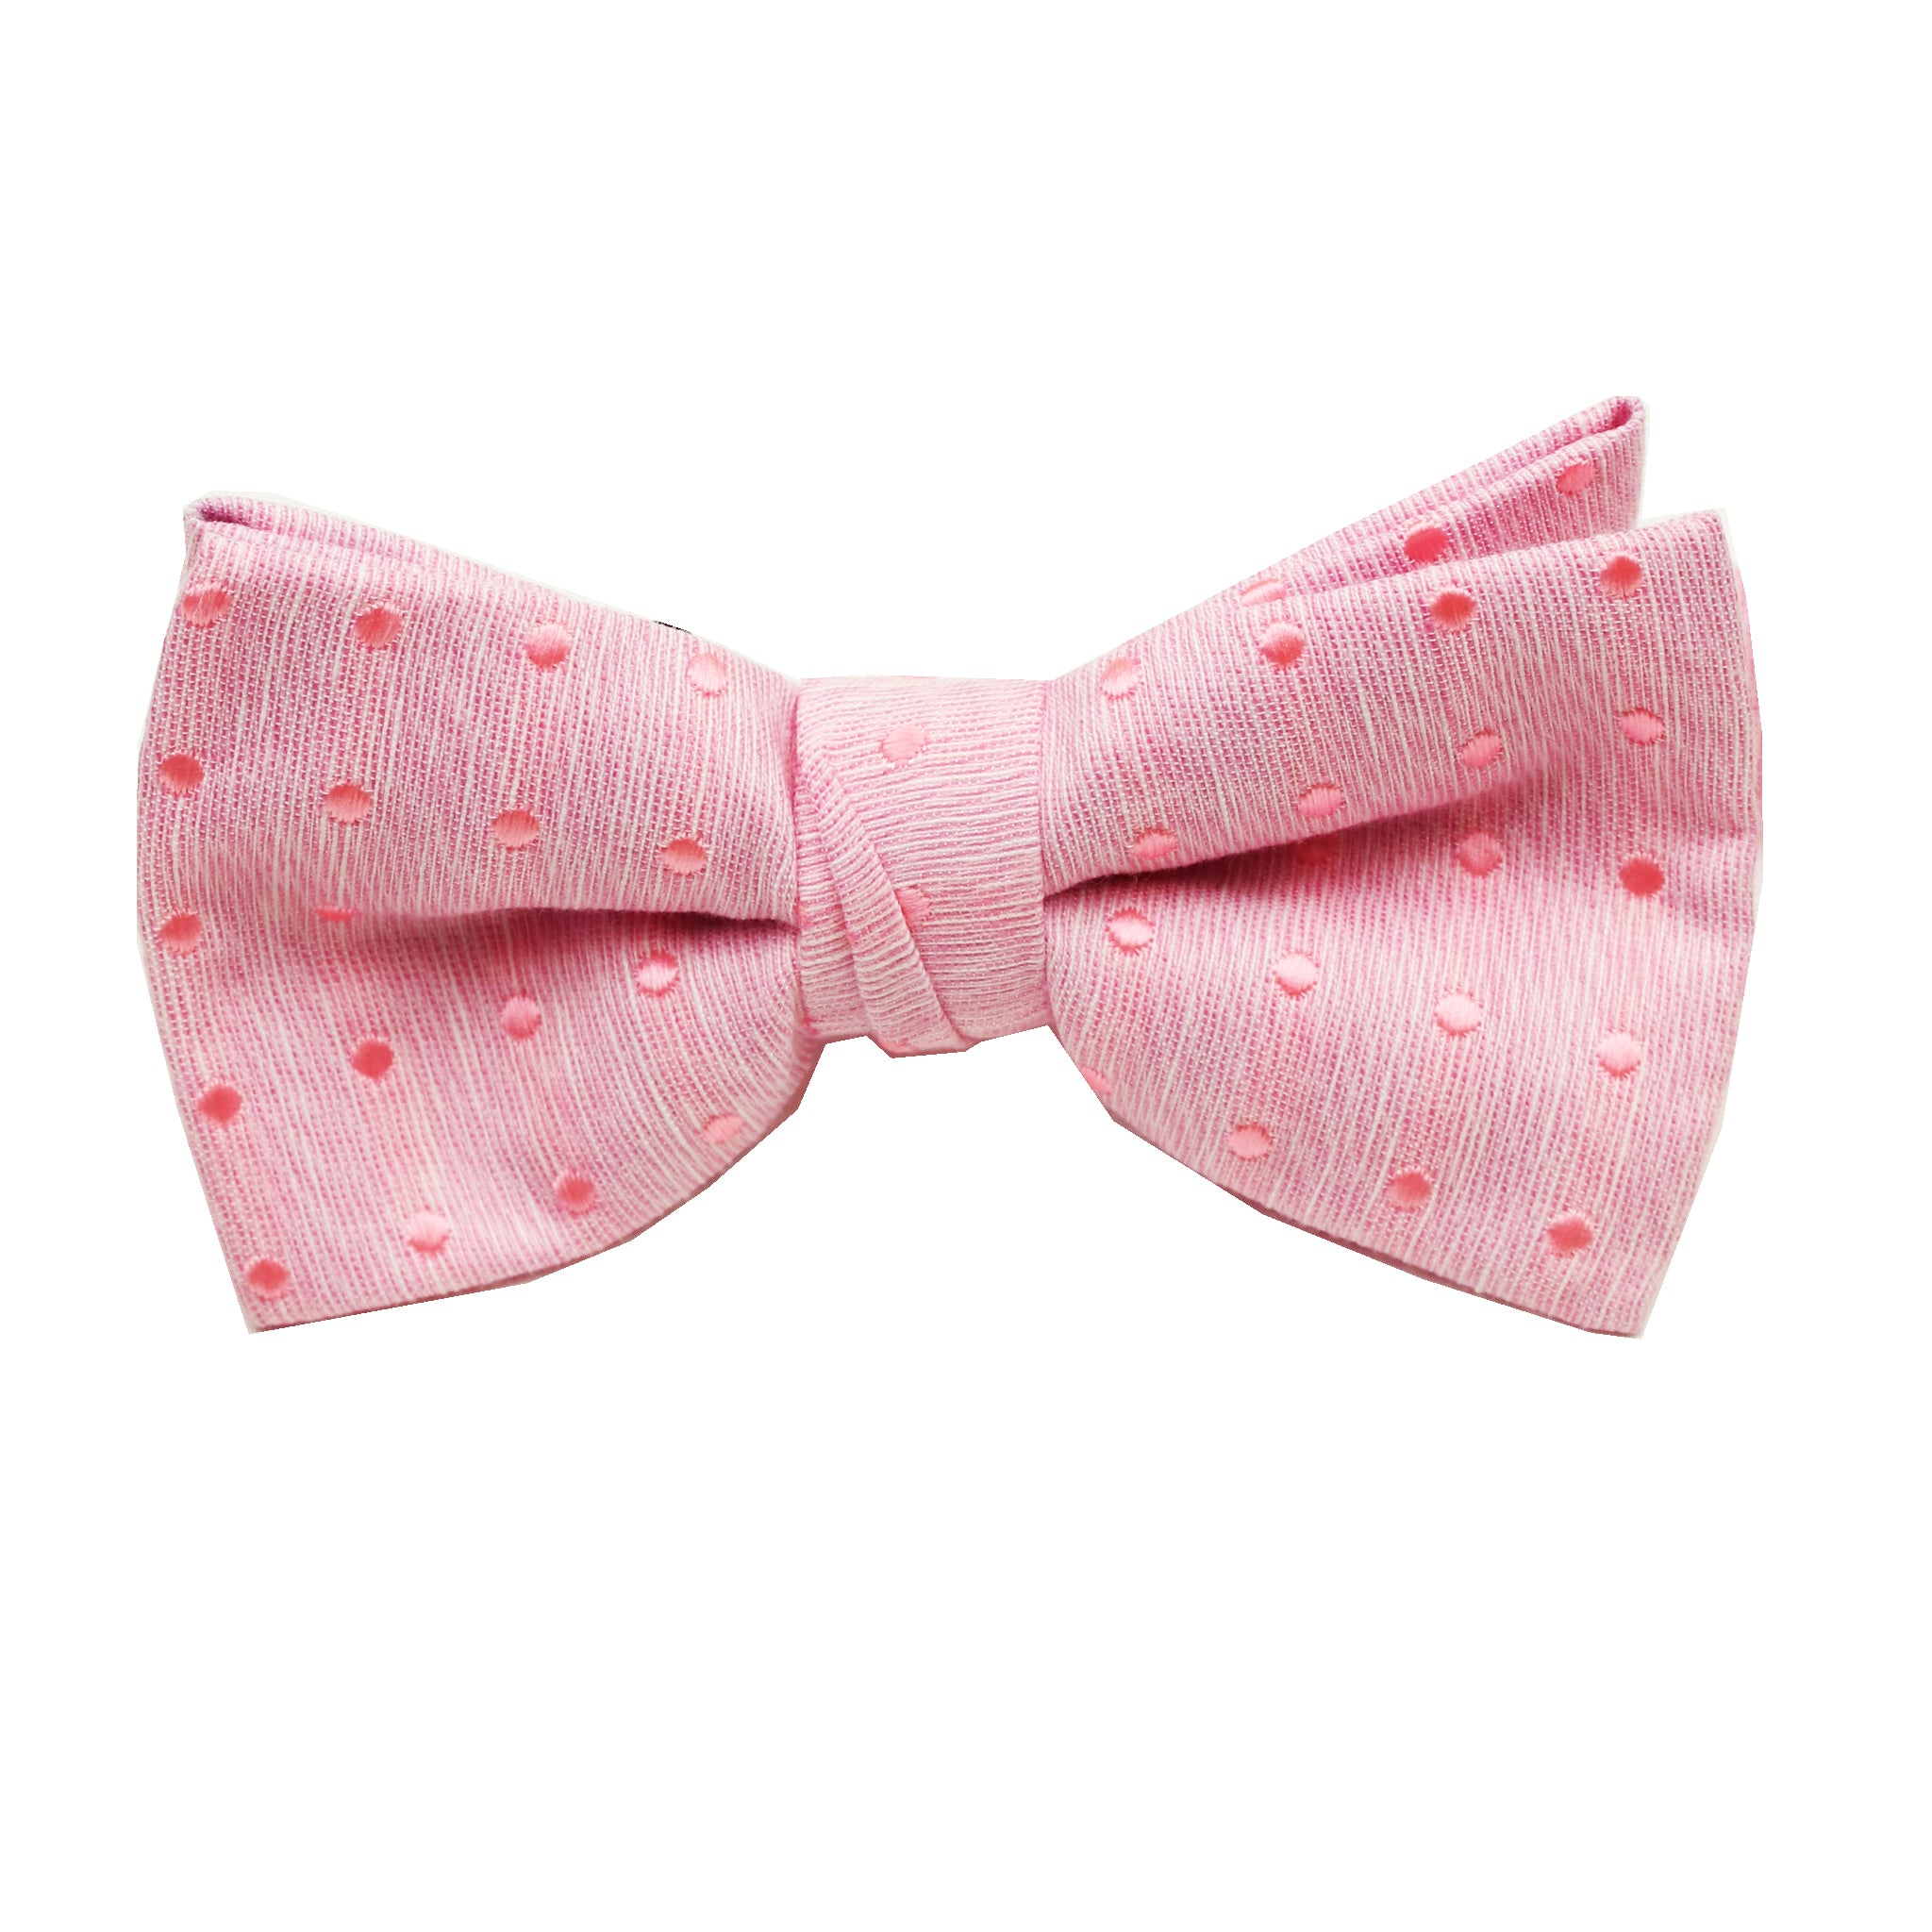 Pink & Pink Polkadot Pre Tie Bow Tie & Pocket Square Set